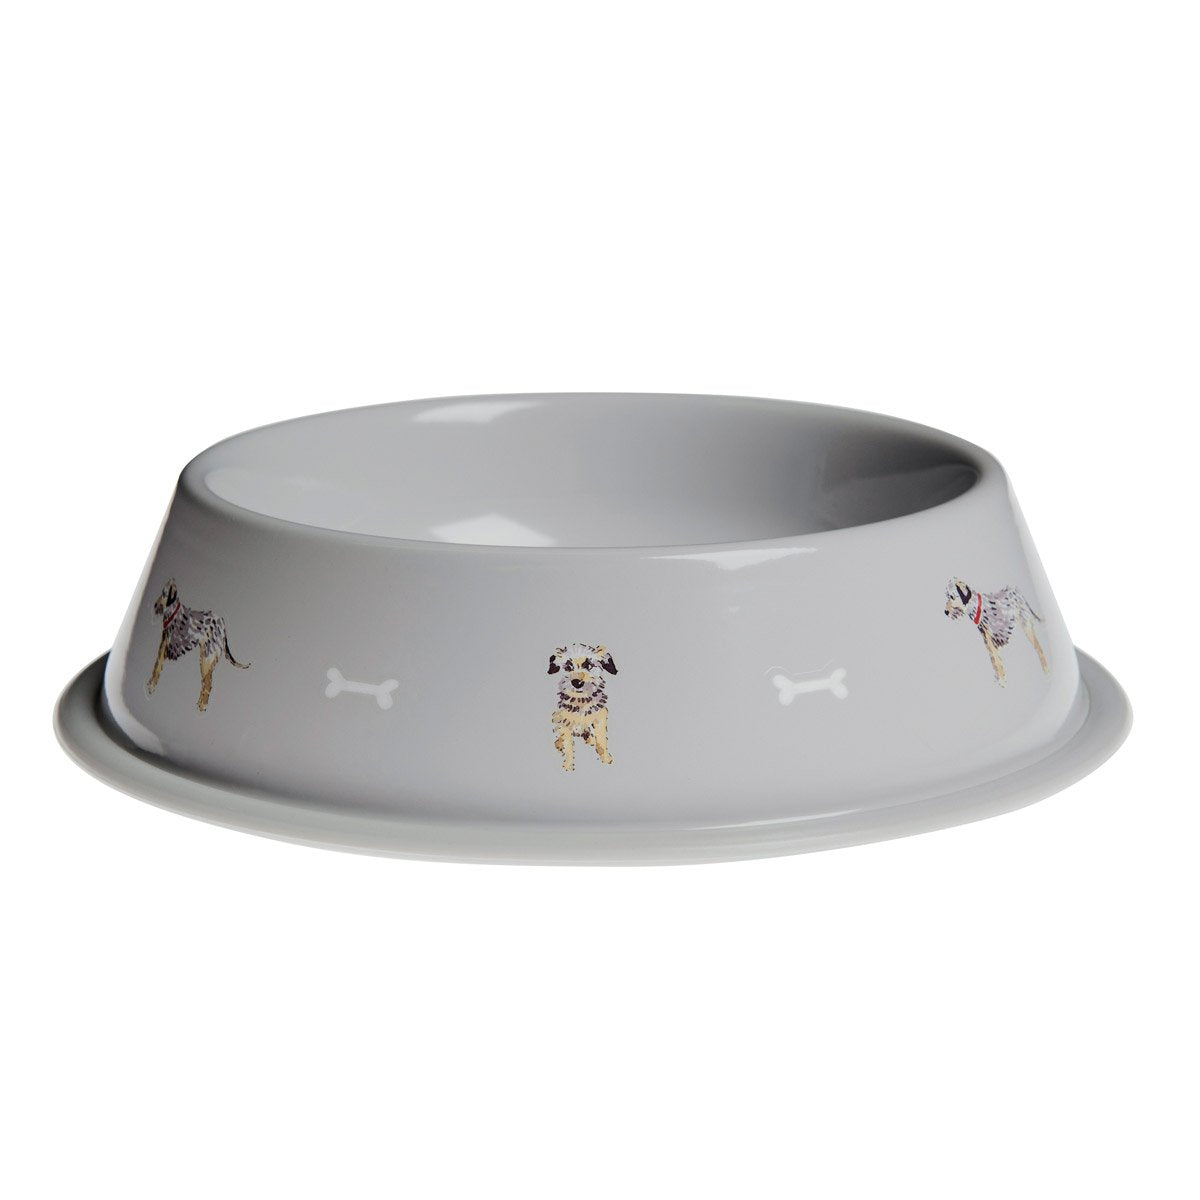 Sophie Allport Terrier Dog Bowl